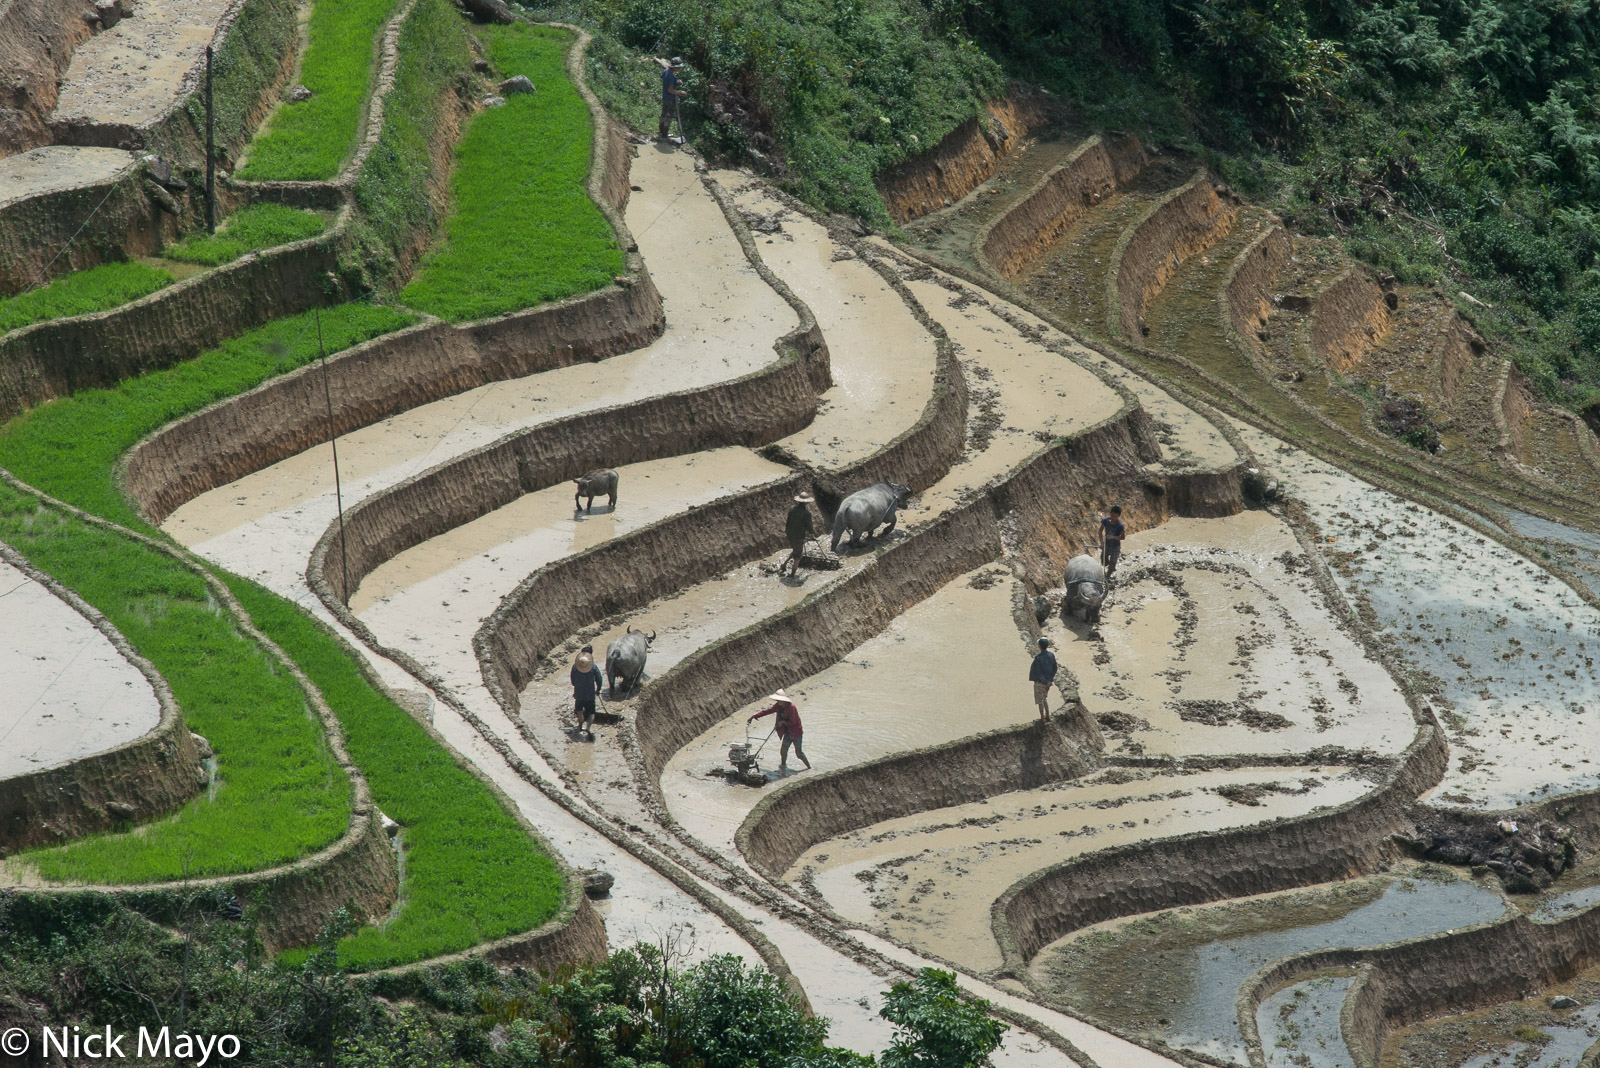 Lao Cai, Paddy, Ploughing, Vietnam, Water Buffalo, photo